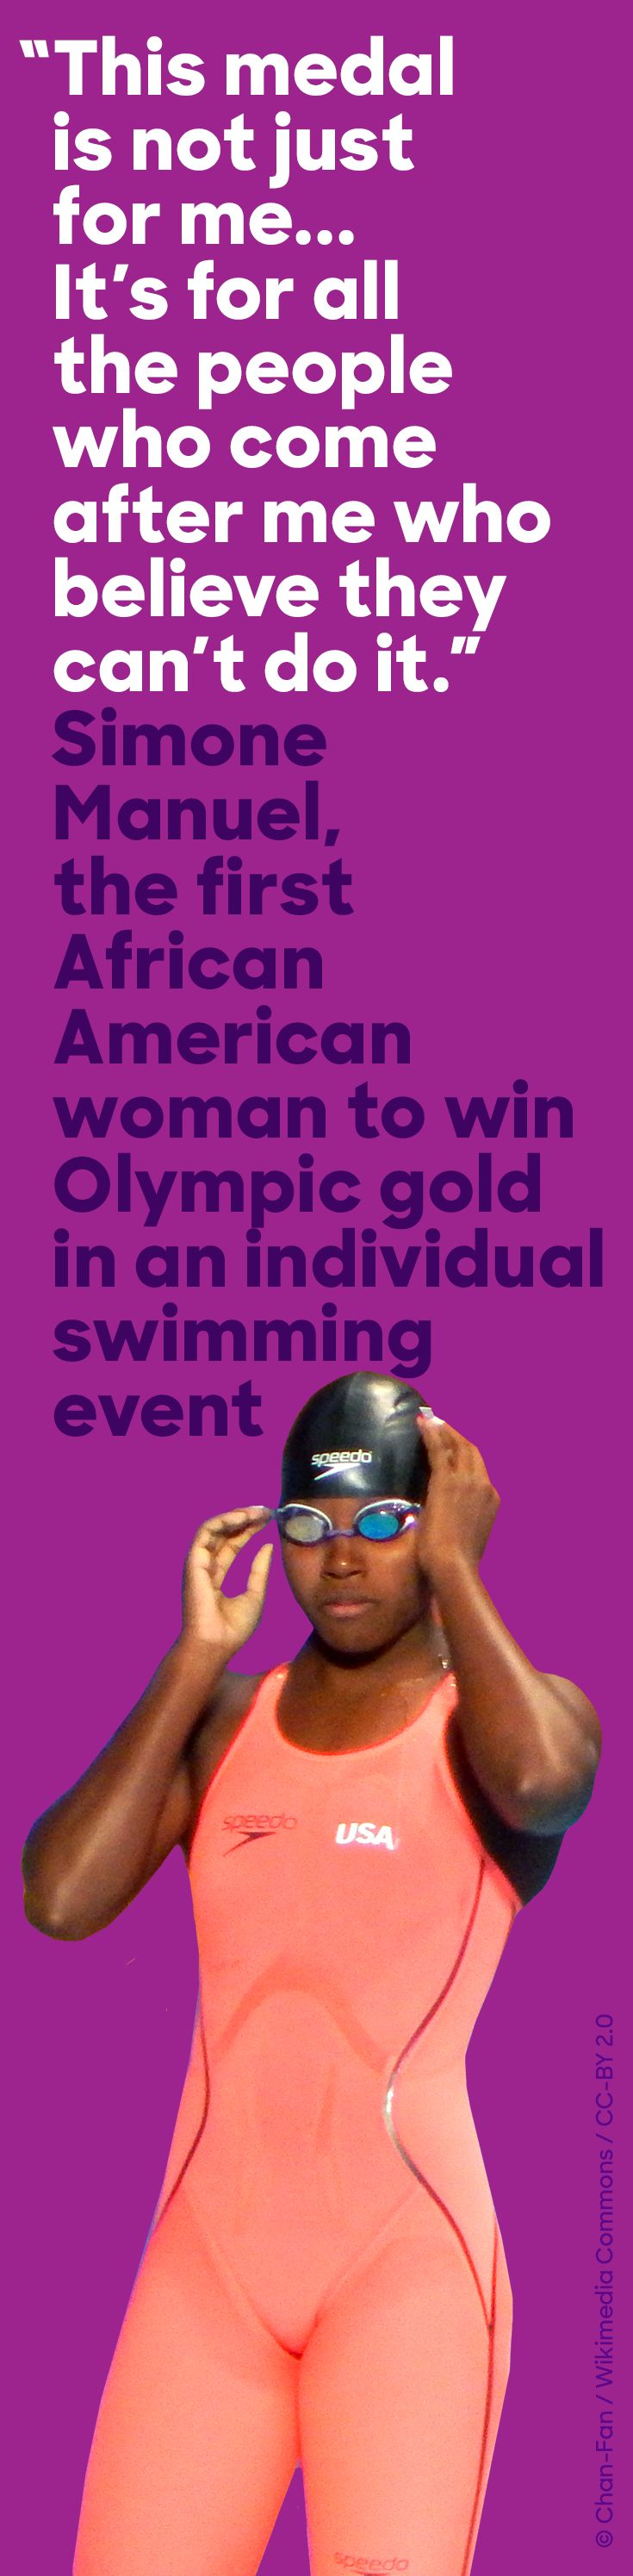 In Rio, U.S. Olympic swimmer Simone Manuel won gold and made history.      This was one of my favorite moments during these games!!!!